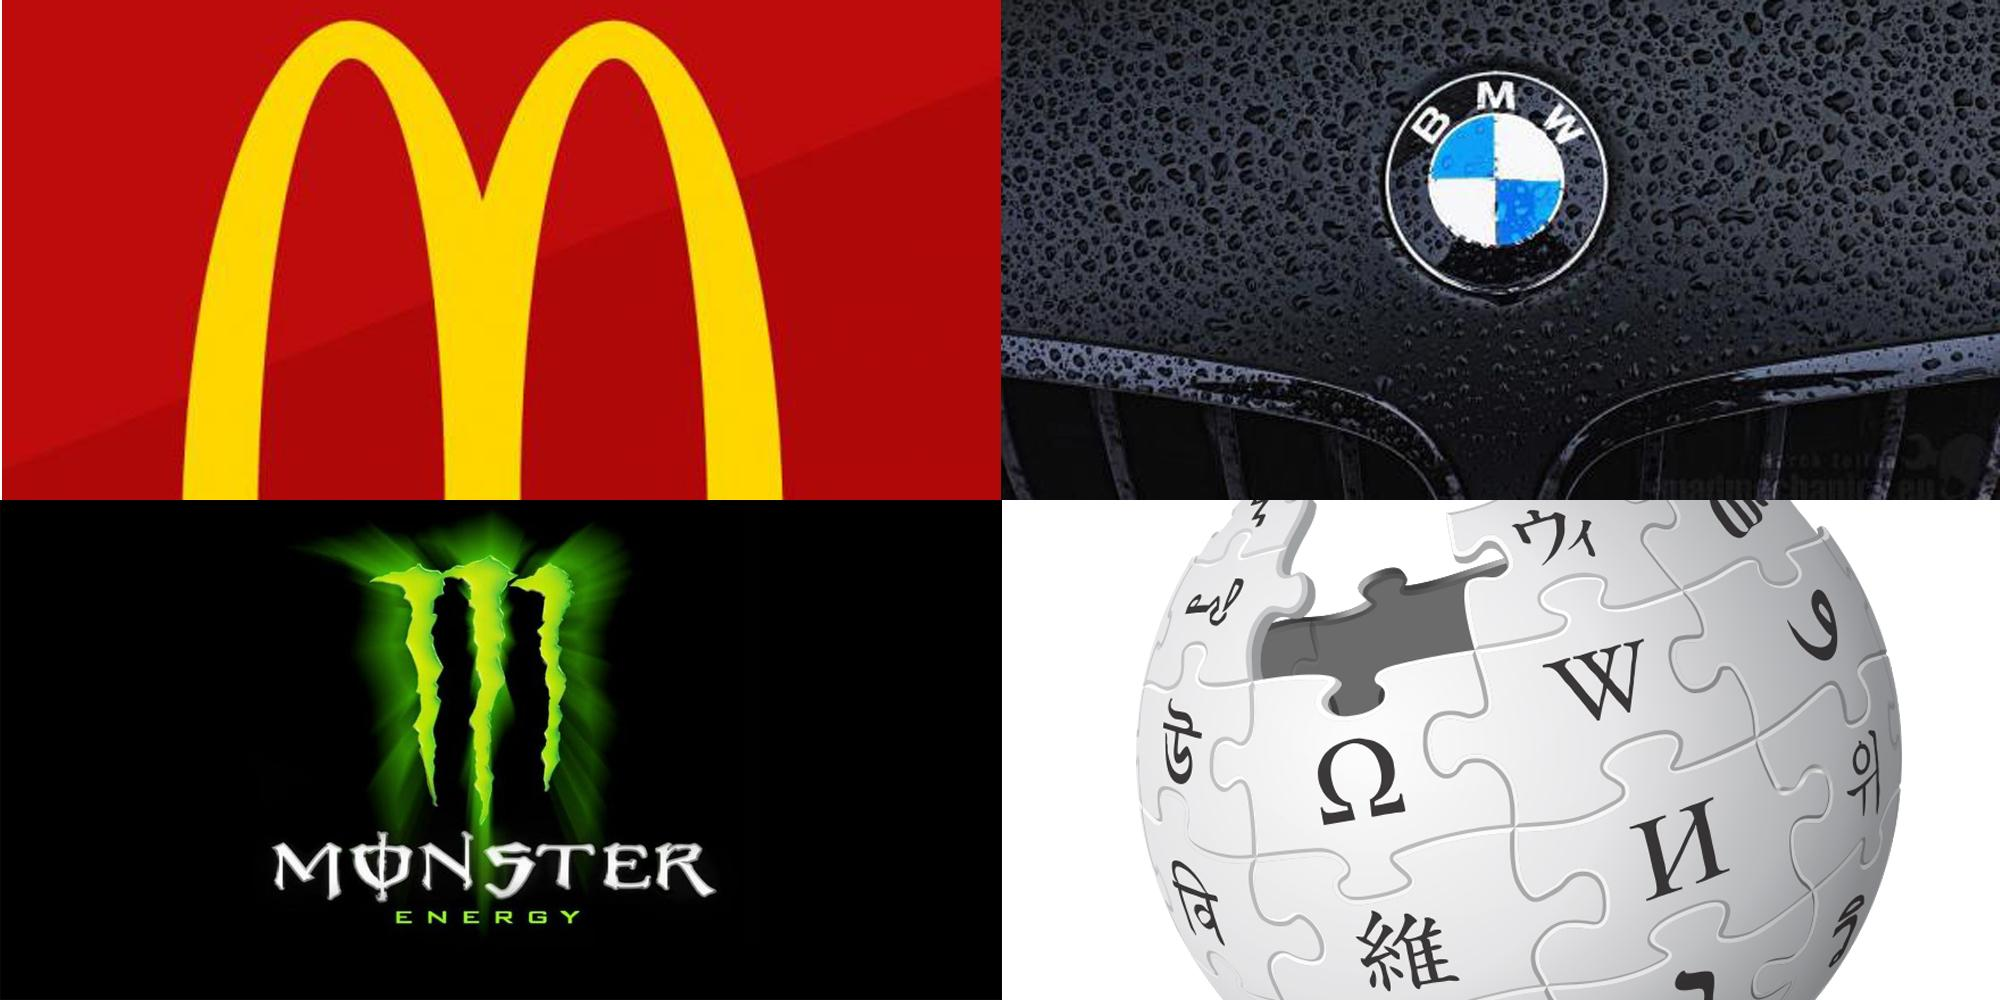 30 logos with hidden meanings | indy100